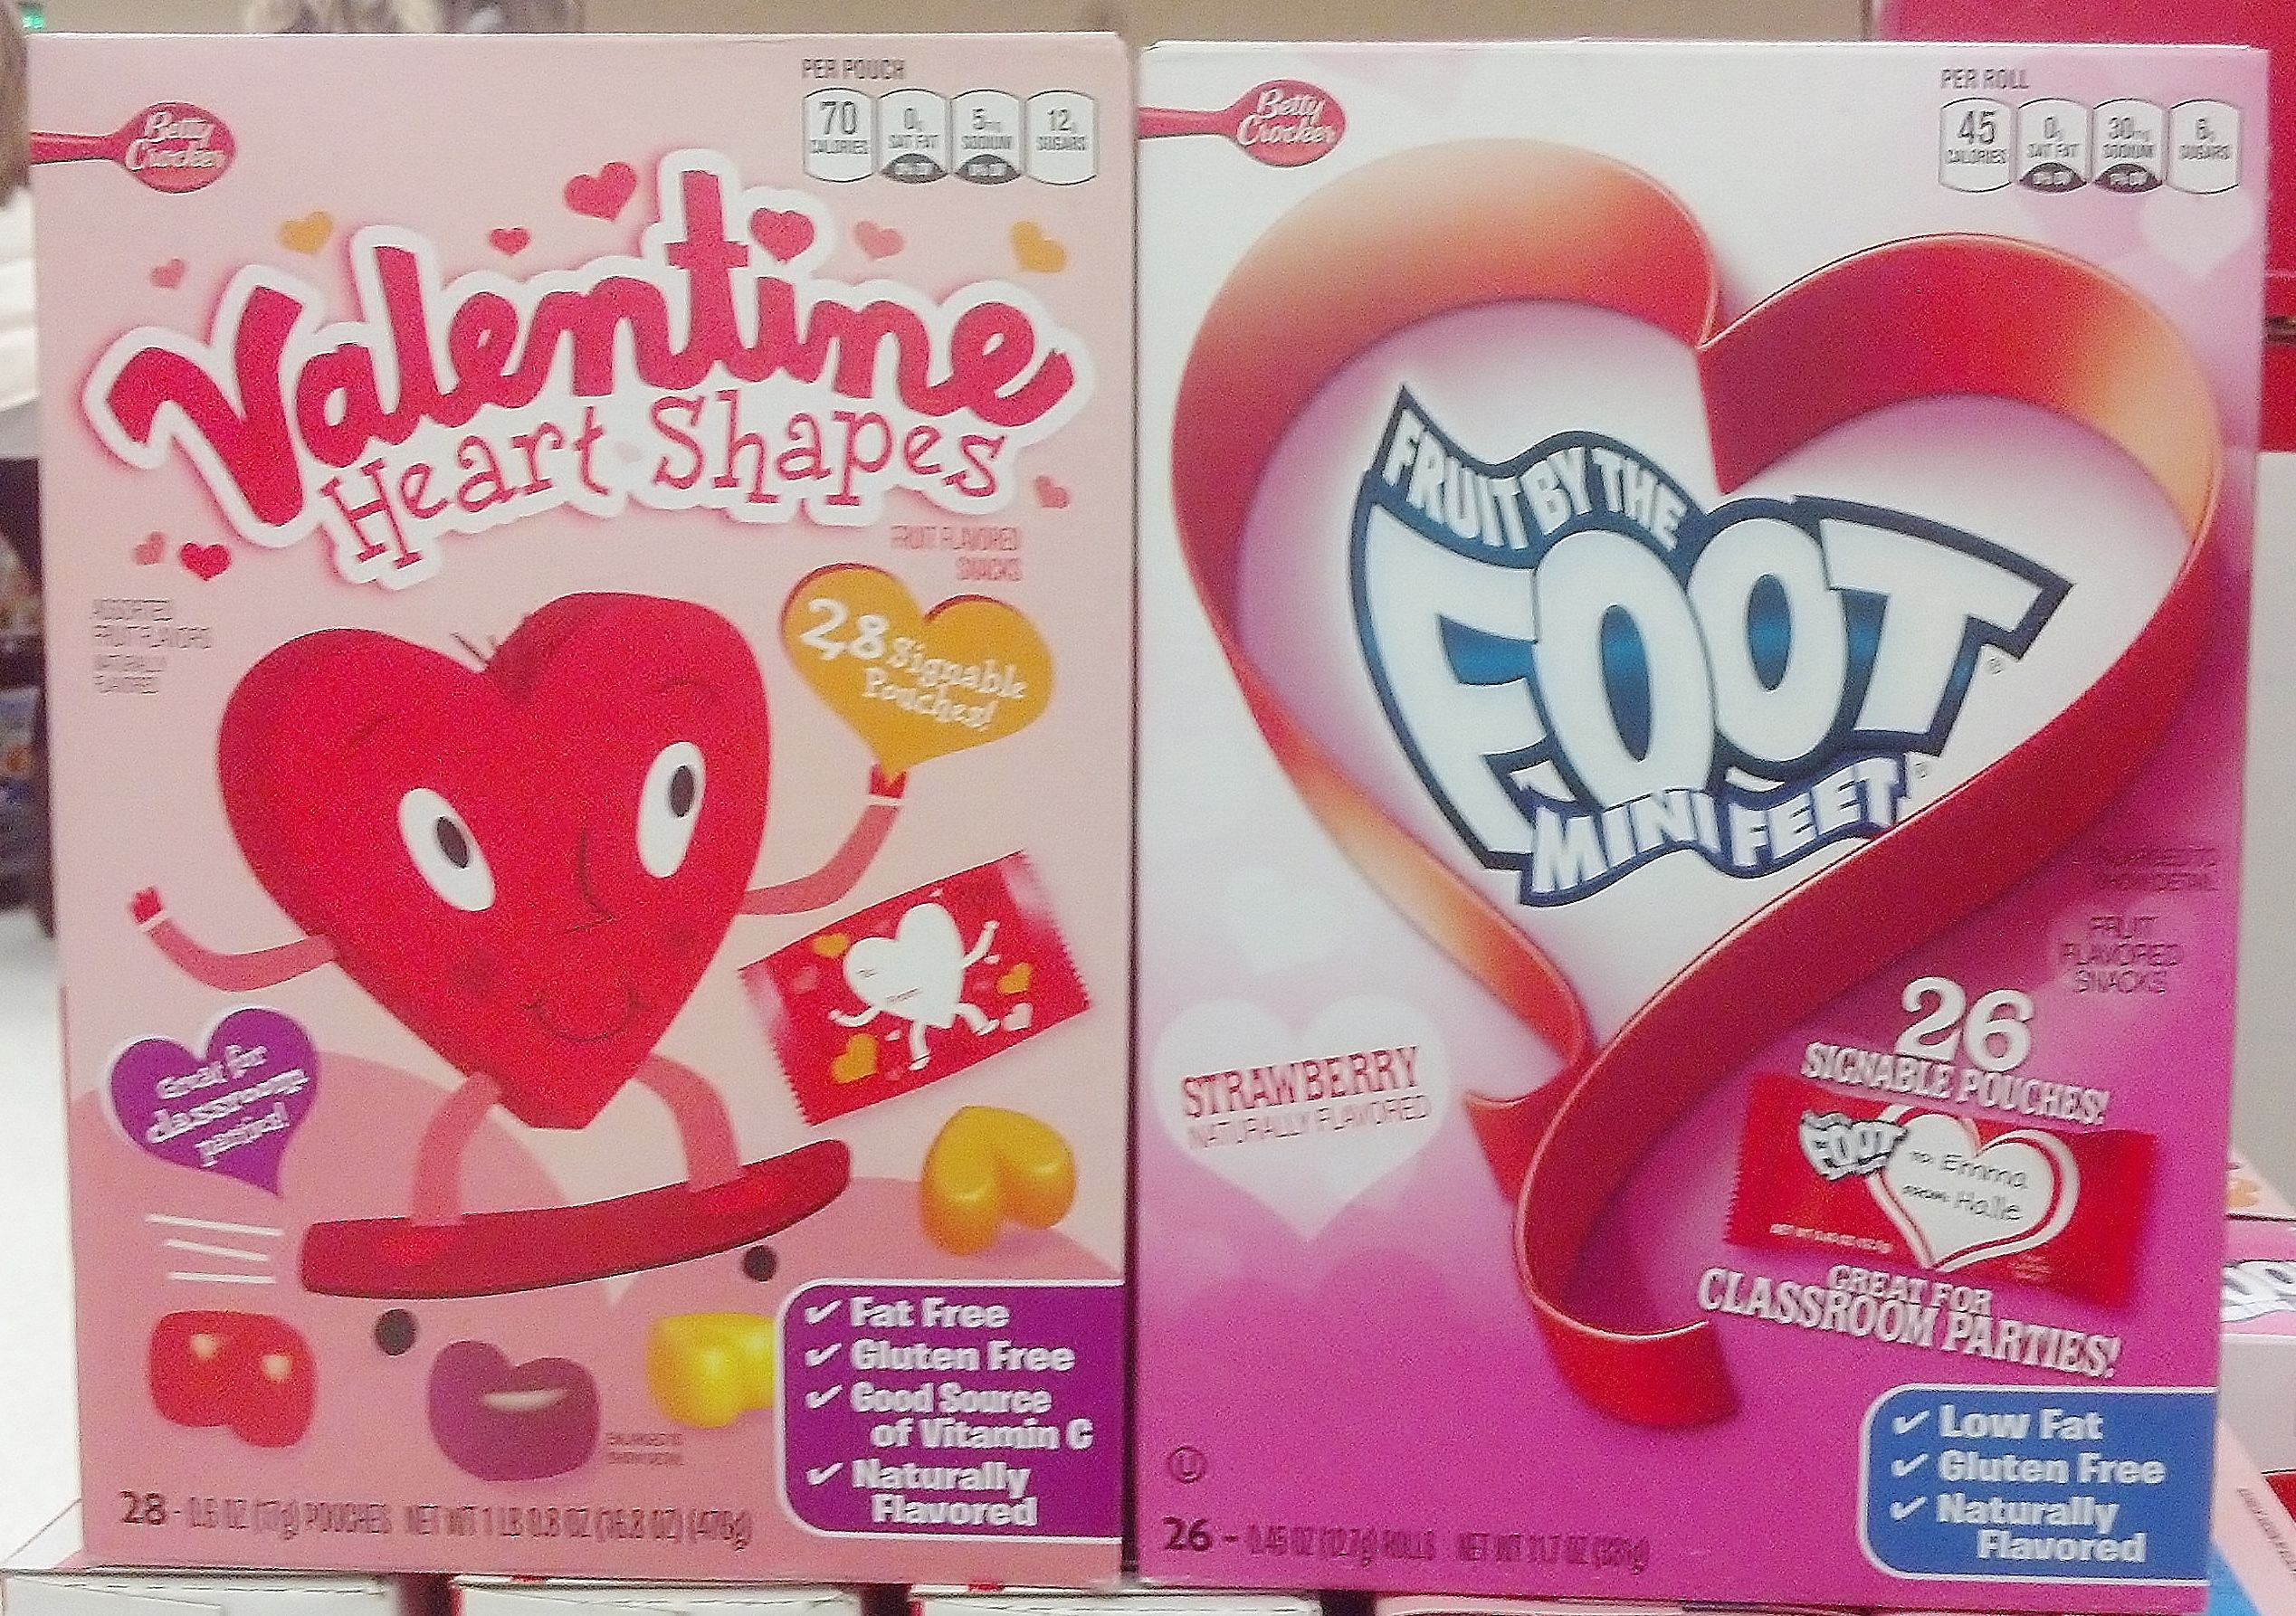 Great For Classroom Parties We Disagree Candy Disguised As Fruit Is Still Well Candy We Can Think Of Healthy Classrooms Classroom Party Classroom Valentine